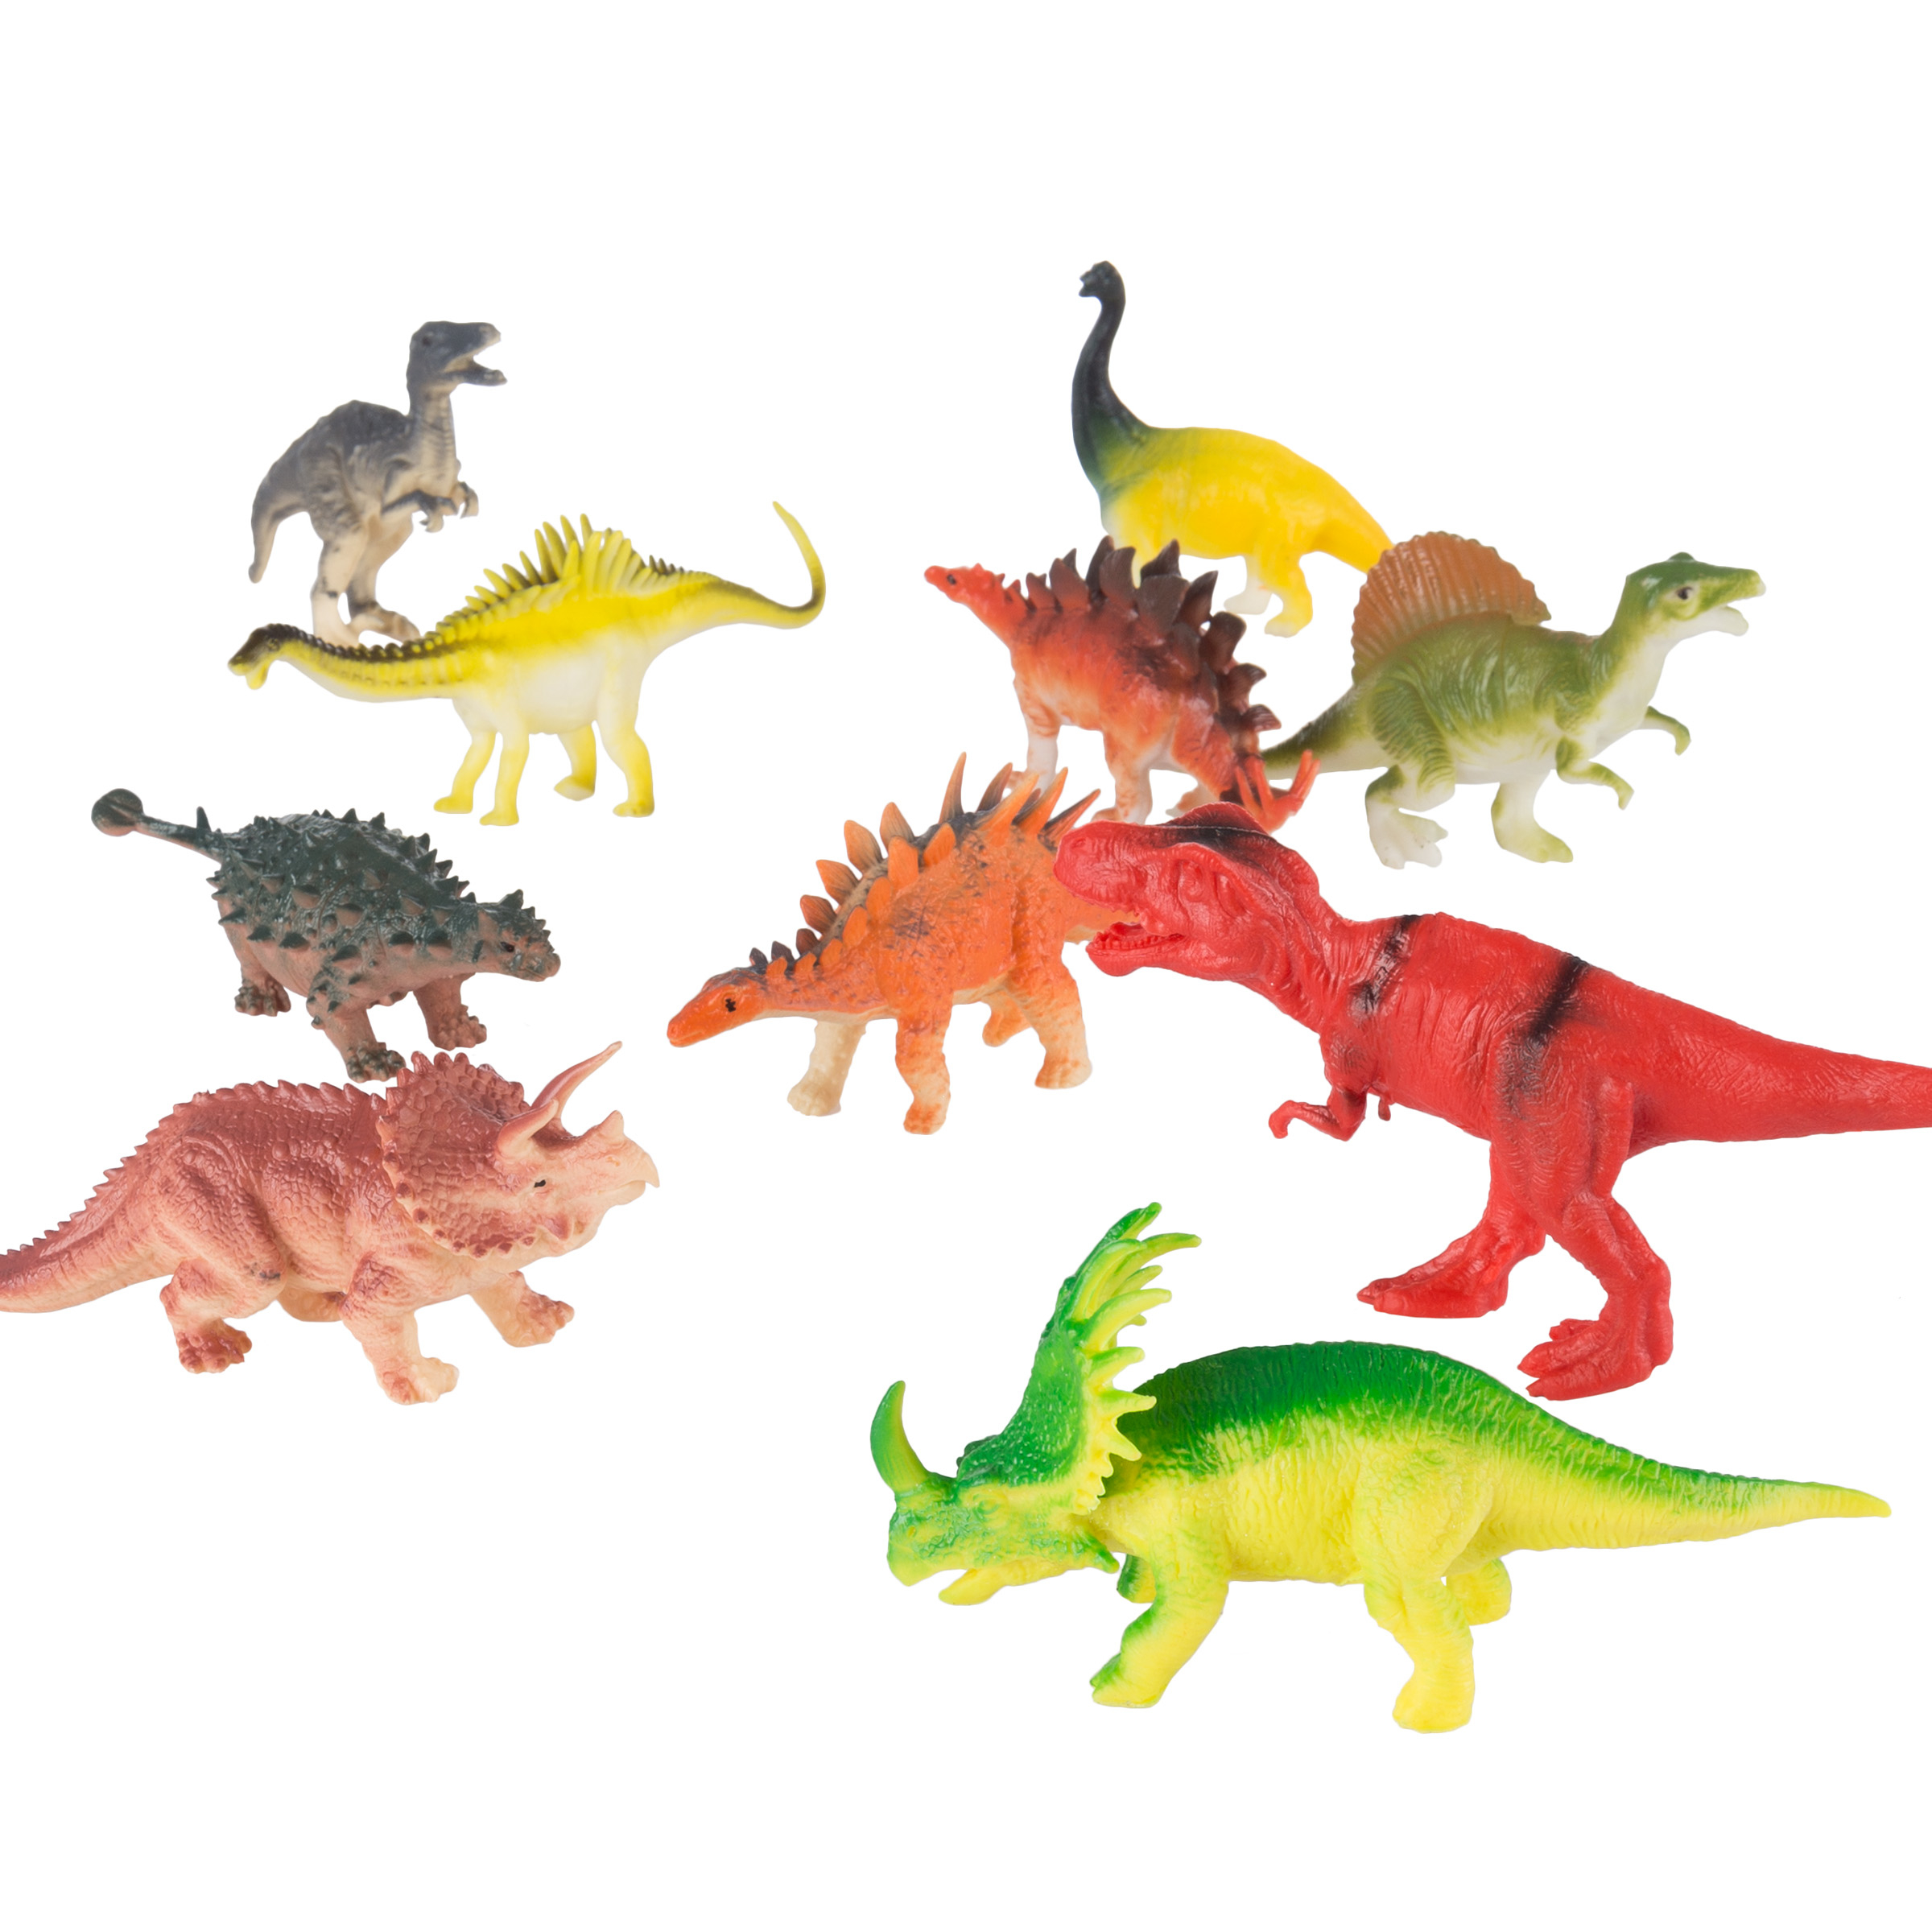 10 Pack Dinosaur Action Figures Colorful T Rex Kids Toys Old School Child Fun